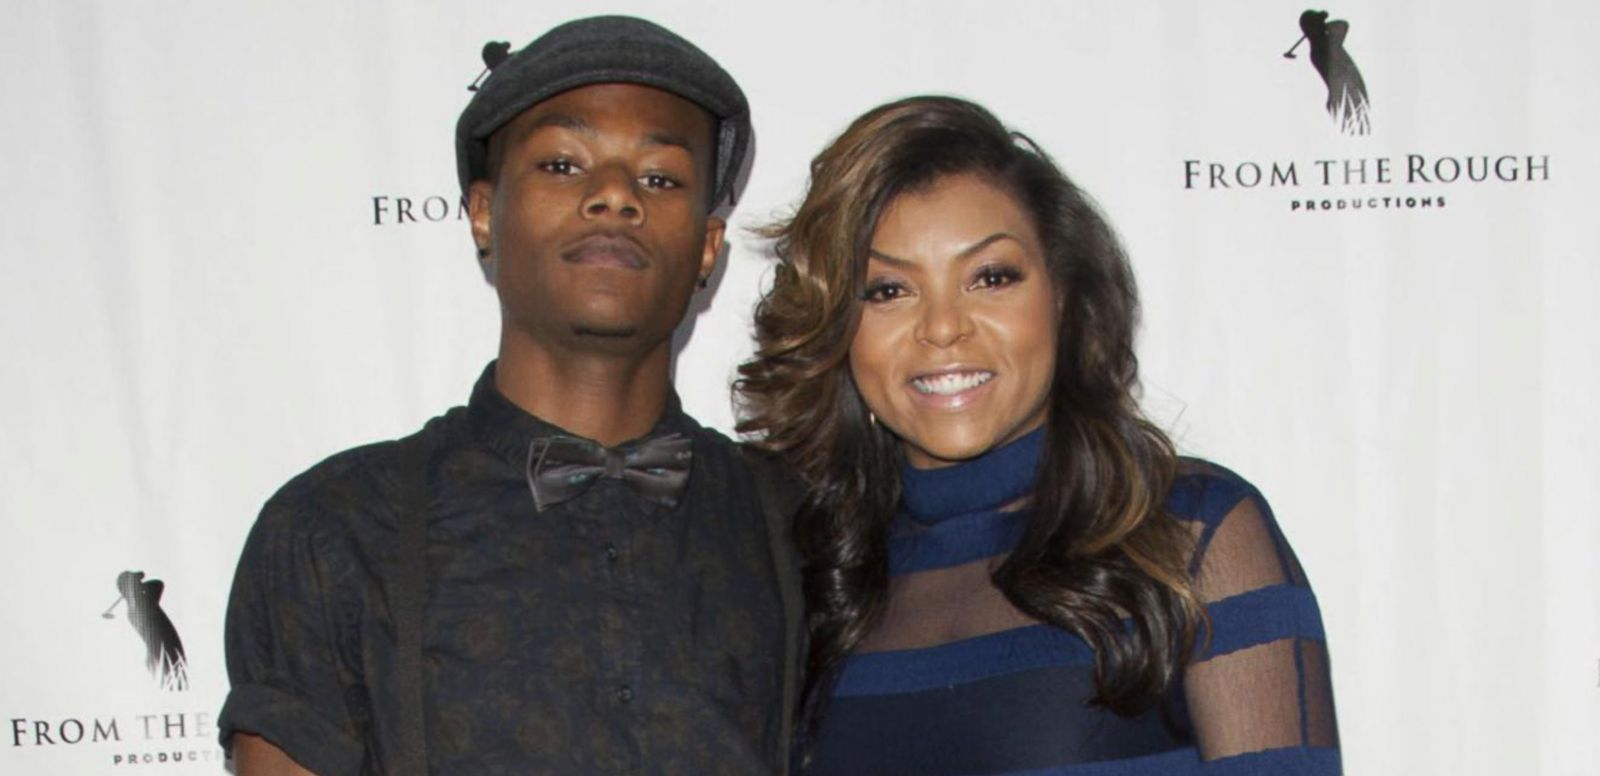 VIDEO: Taraji P. Henson, Star of the Television Drama 'Empire', Apologizes